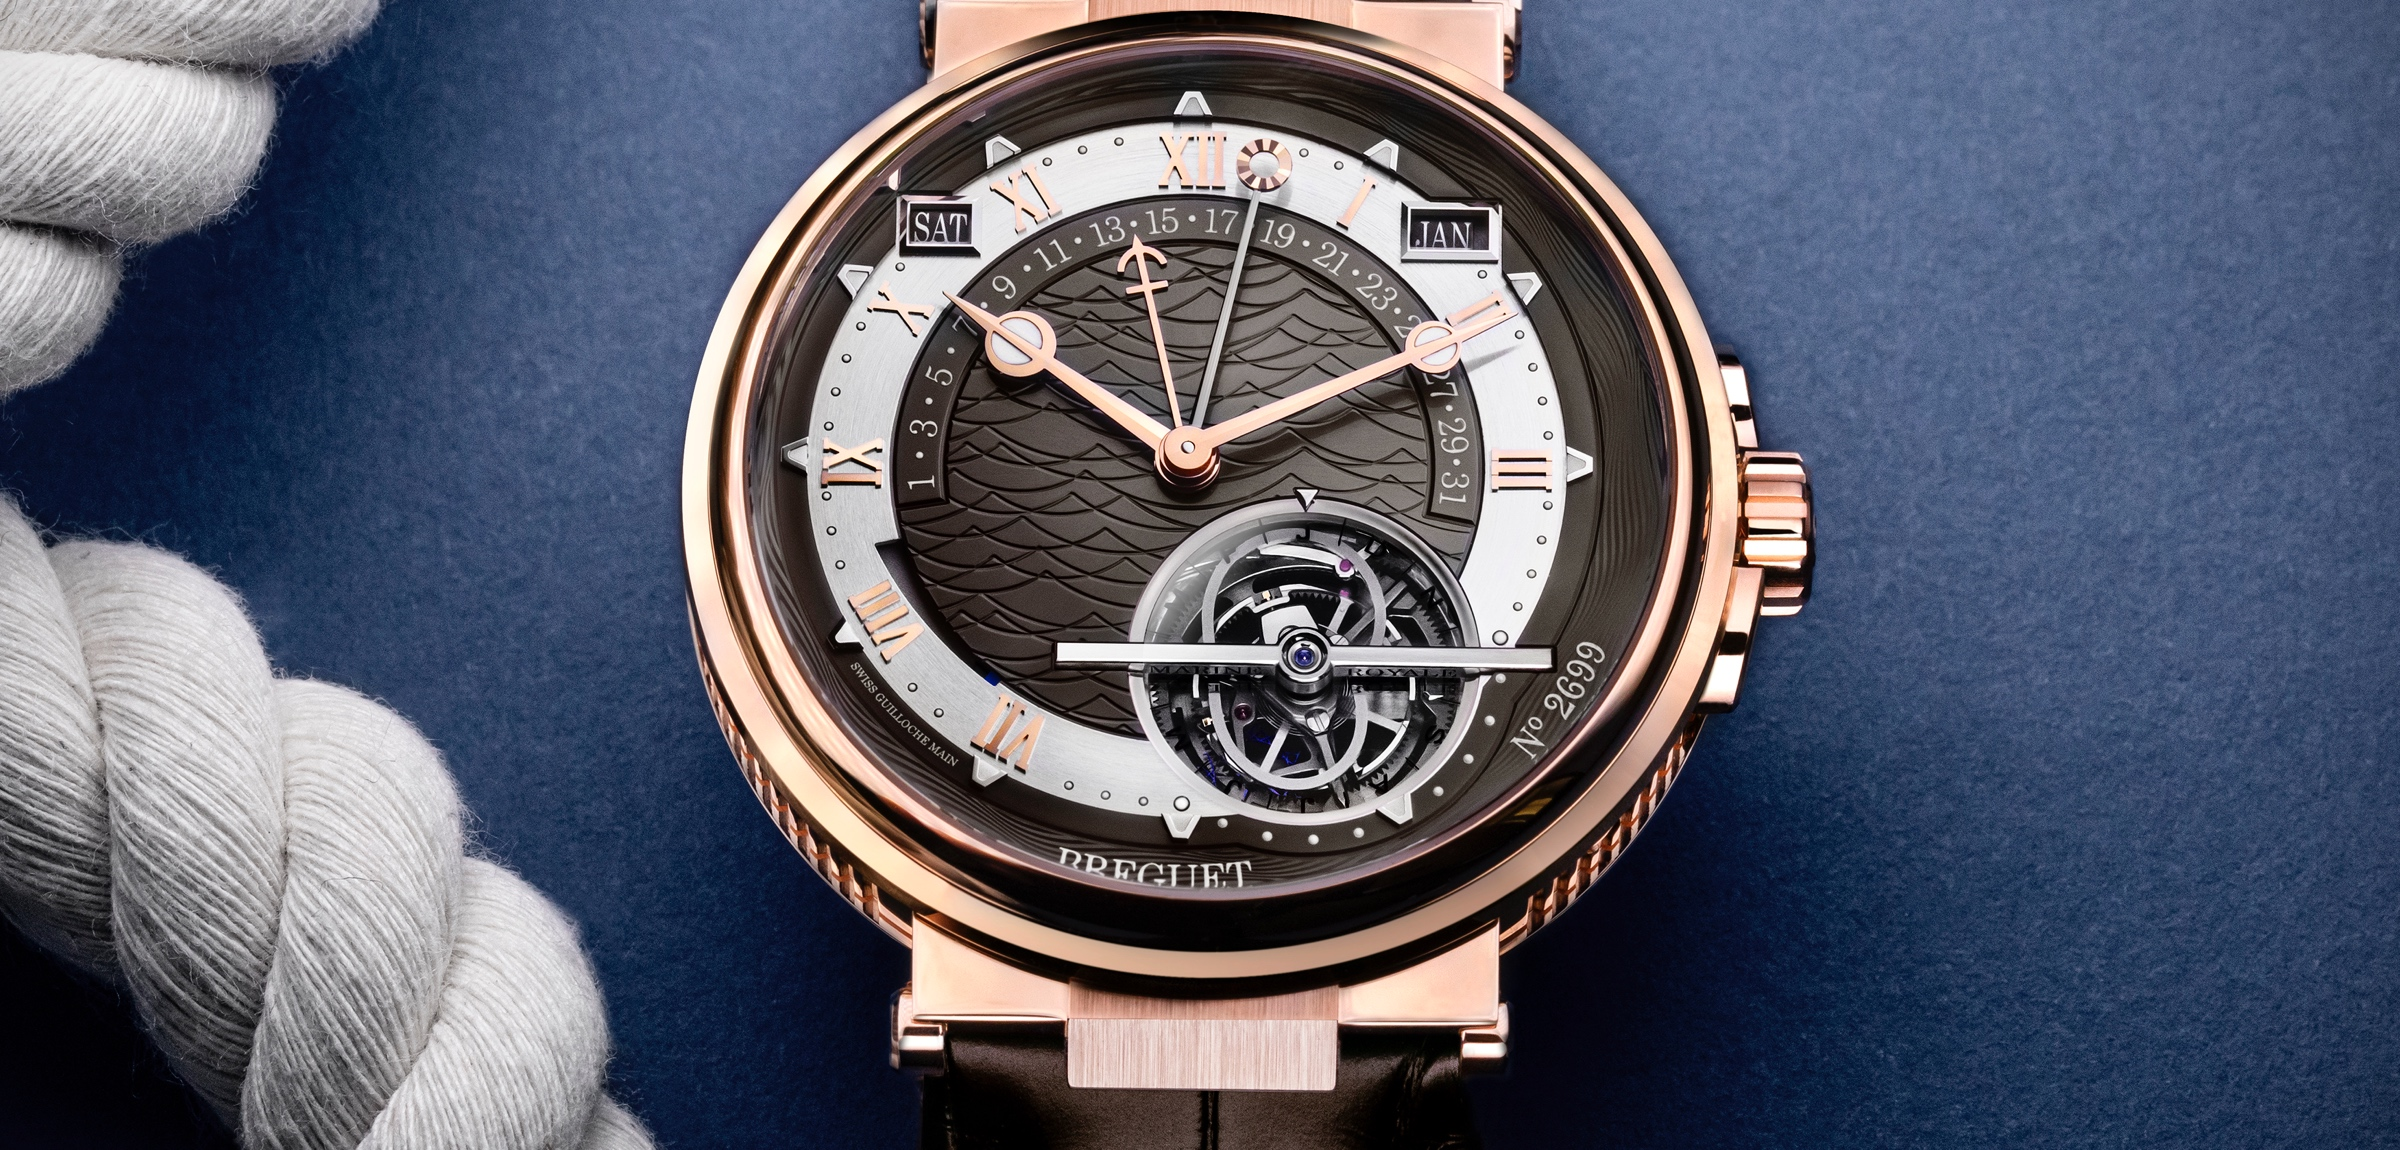 Breguet Marine Tourbillon Equation Marchante 5887 - cover 02